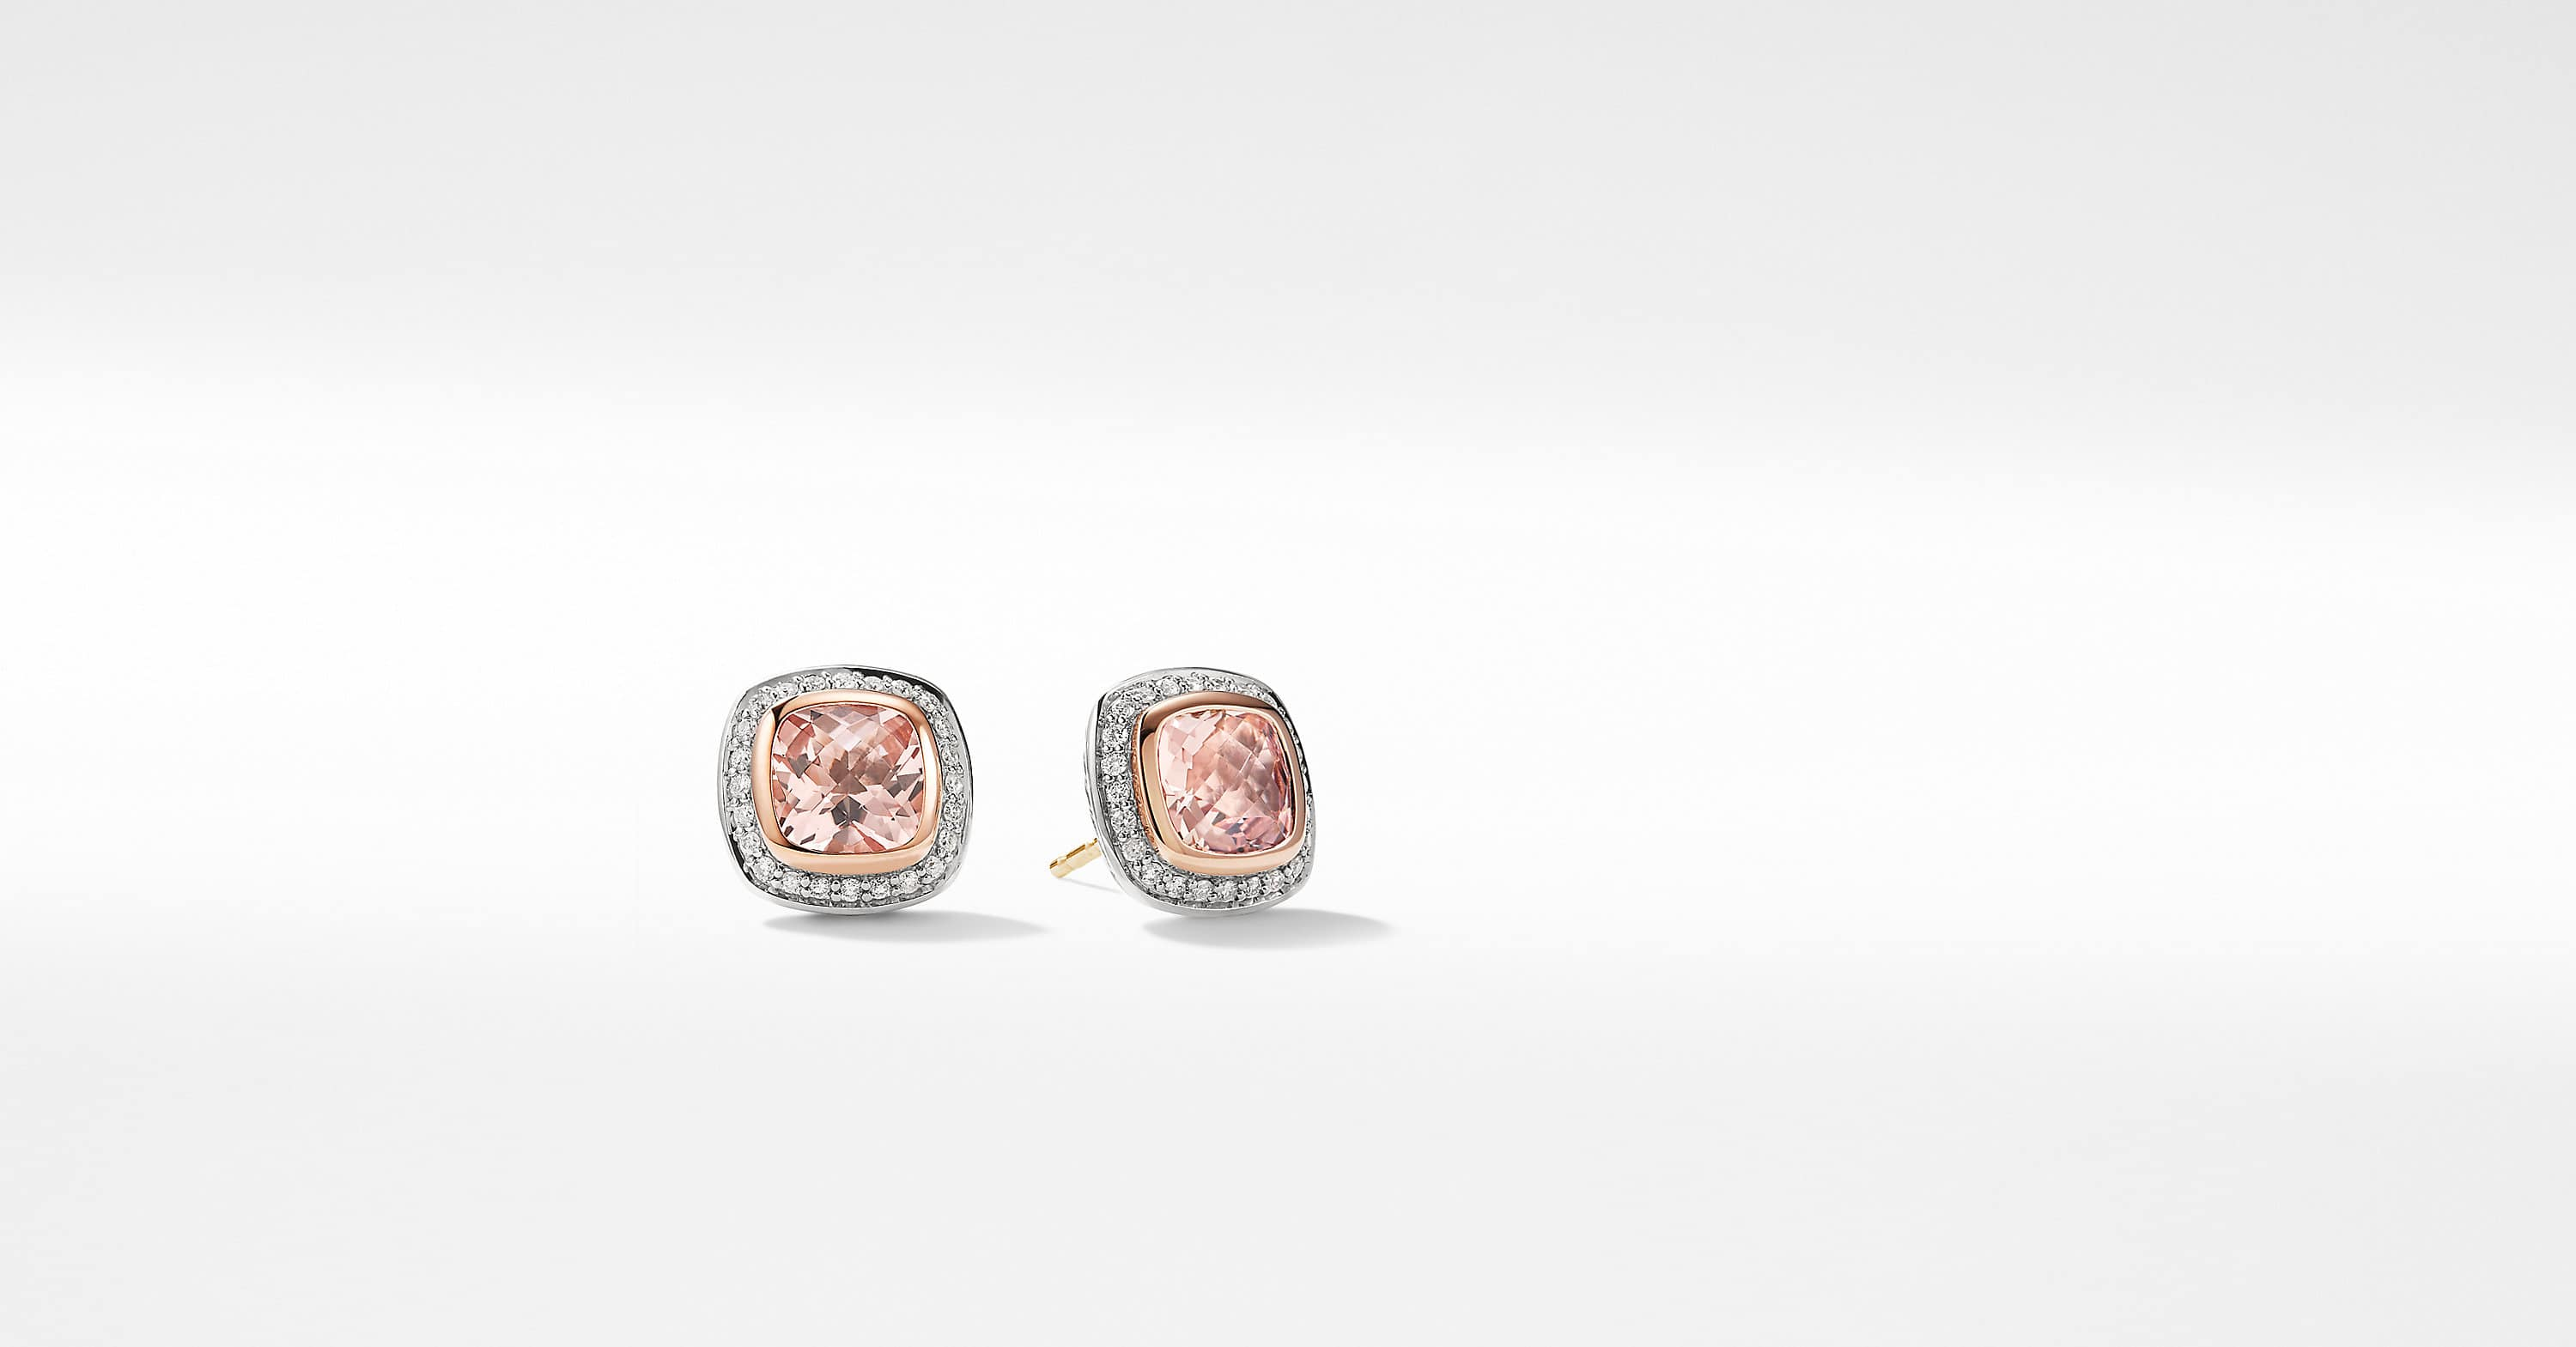 Albion Earrings with Diamonds and 18K Rose Gold, 7mm